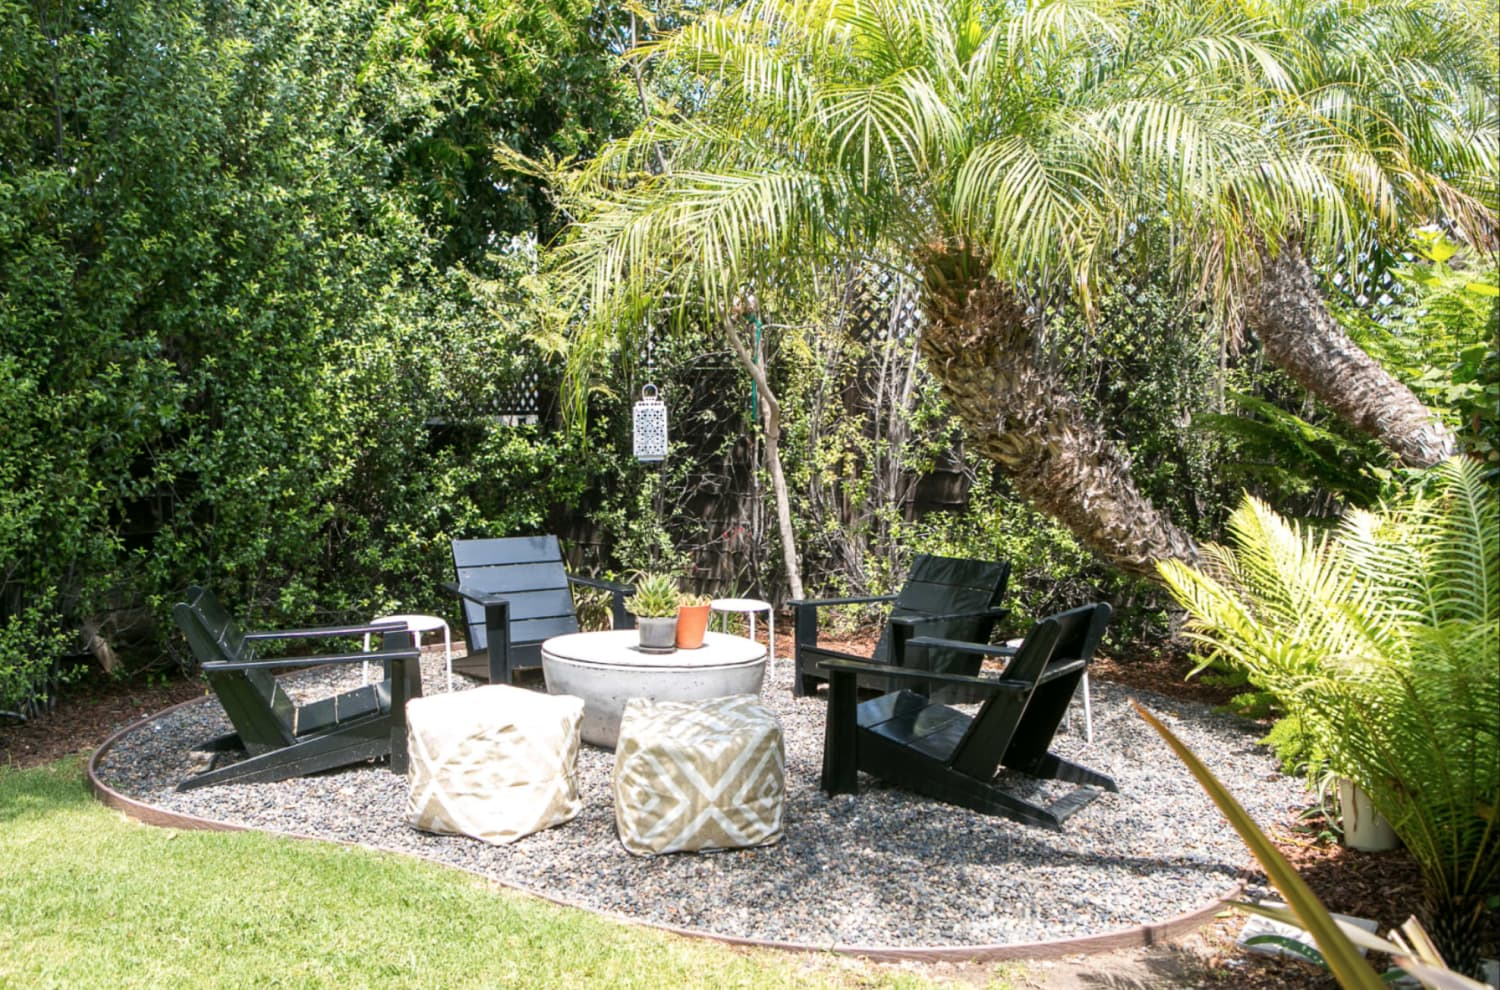 35 Fire Pit Ideas That Will Make Your Backyard Glow